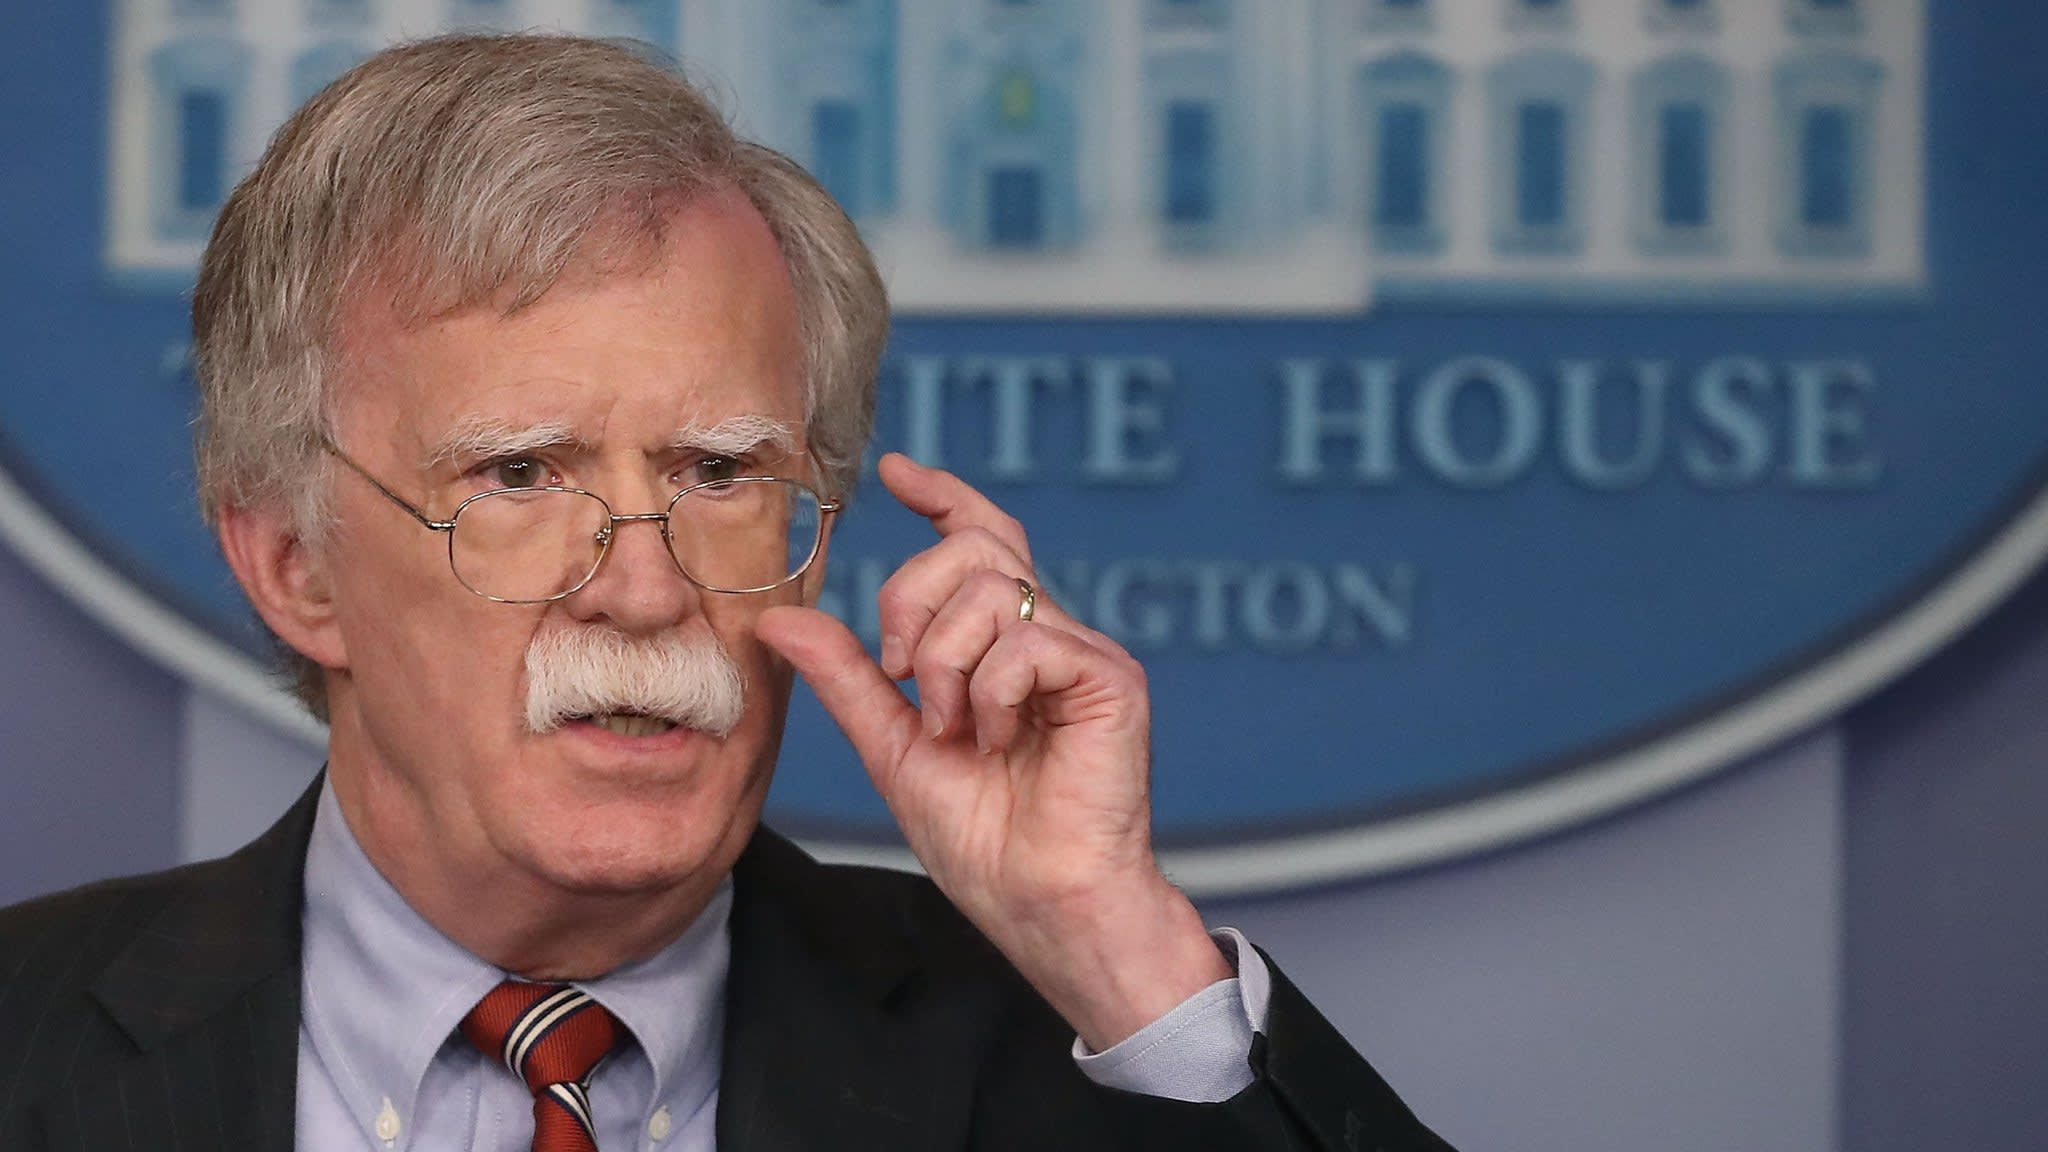 N Korea not making efforts to denuclearise, says John Bolton